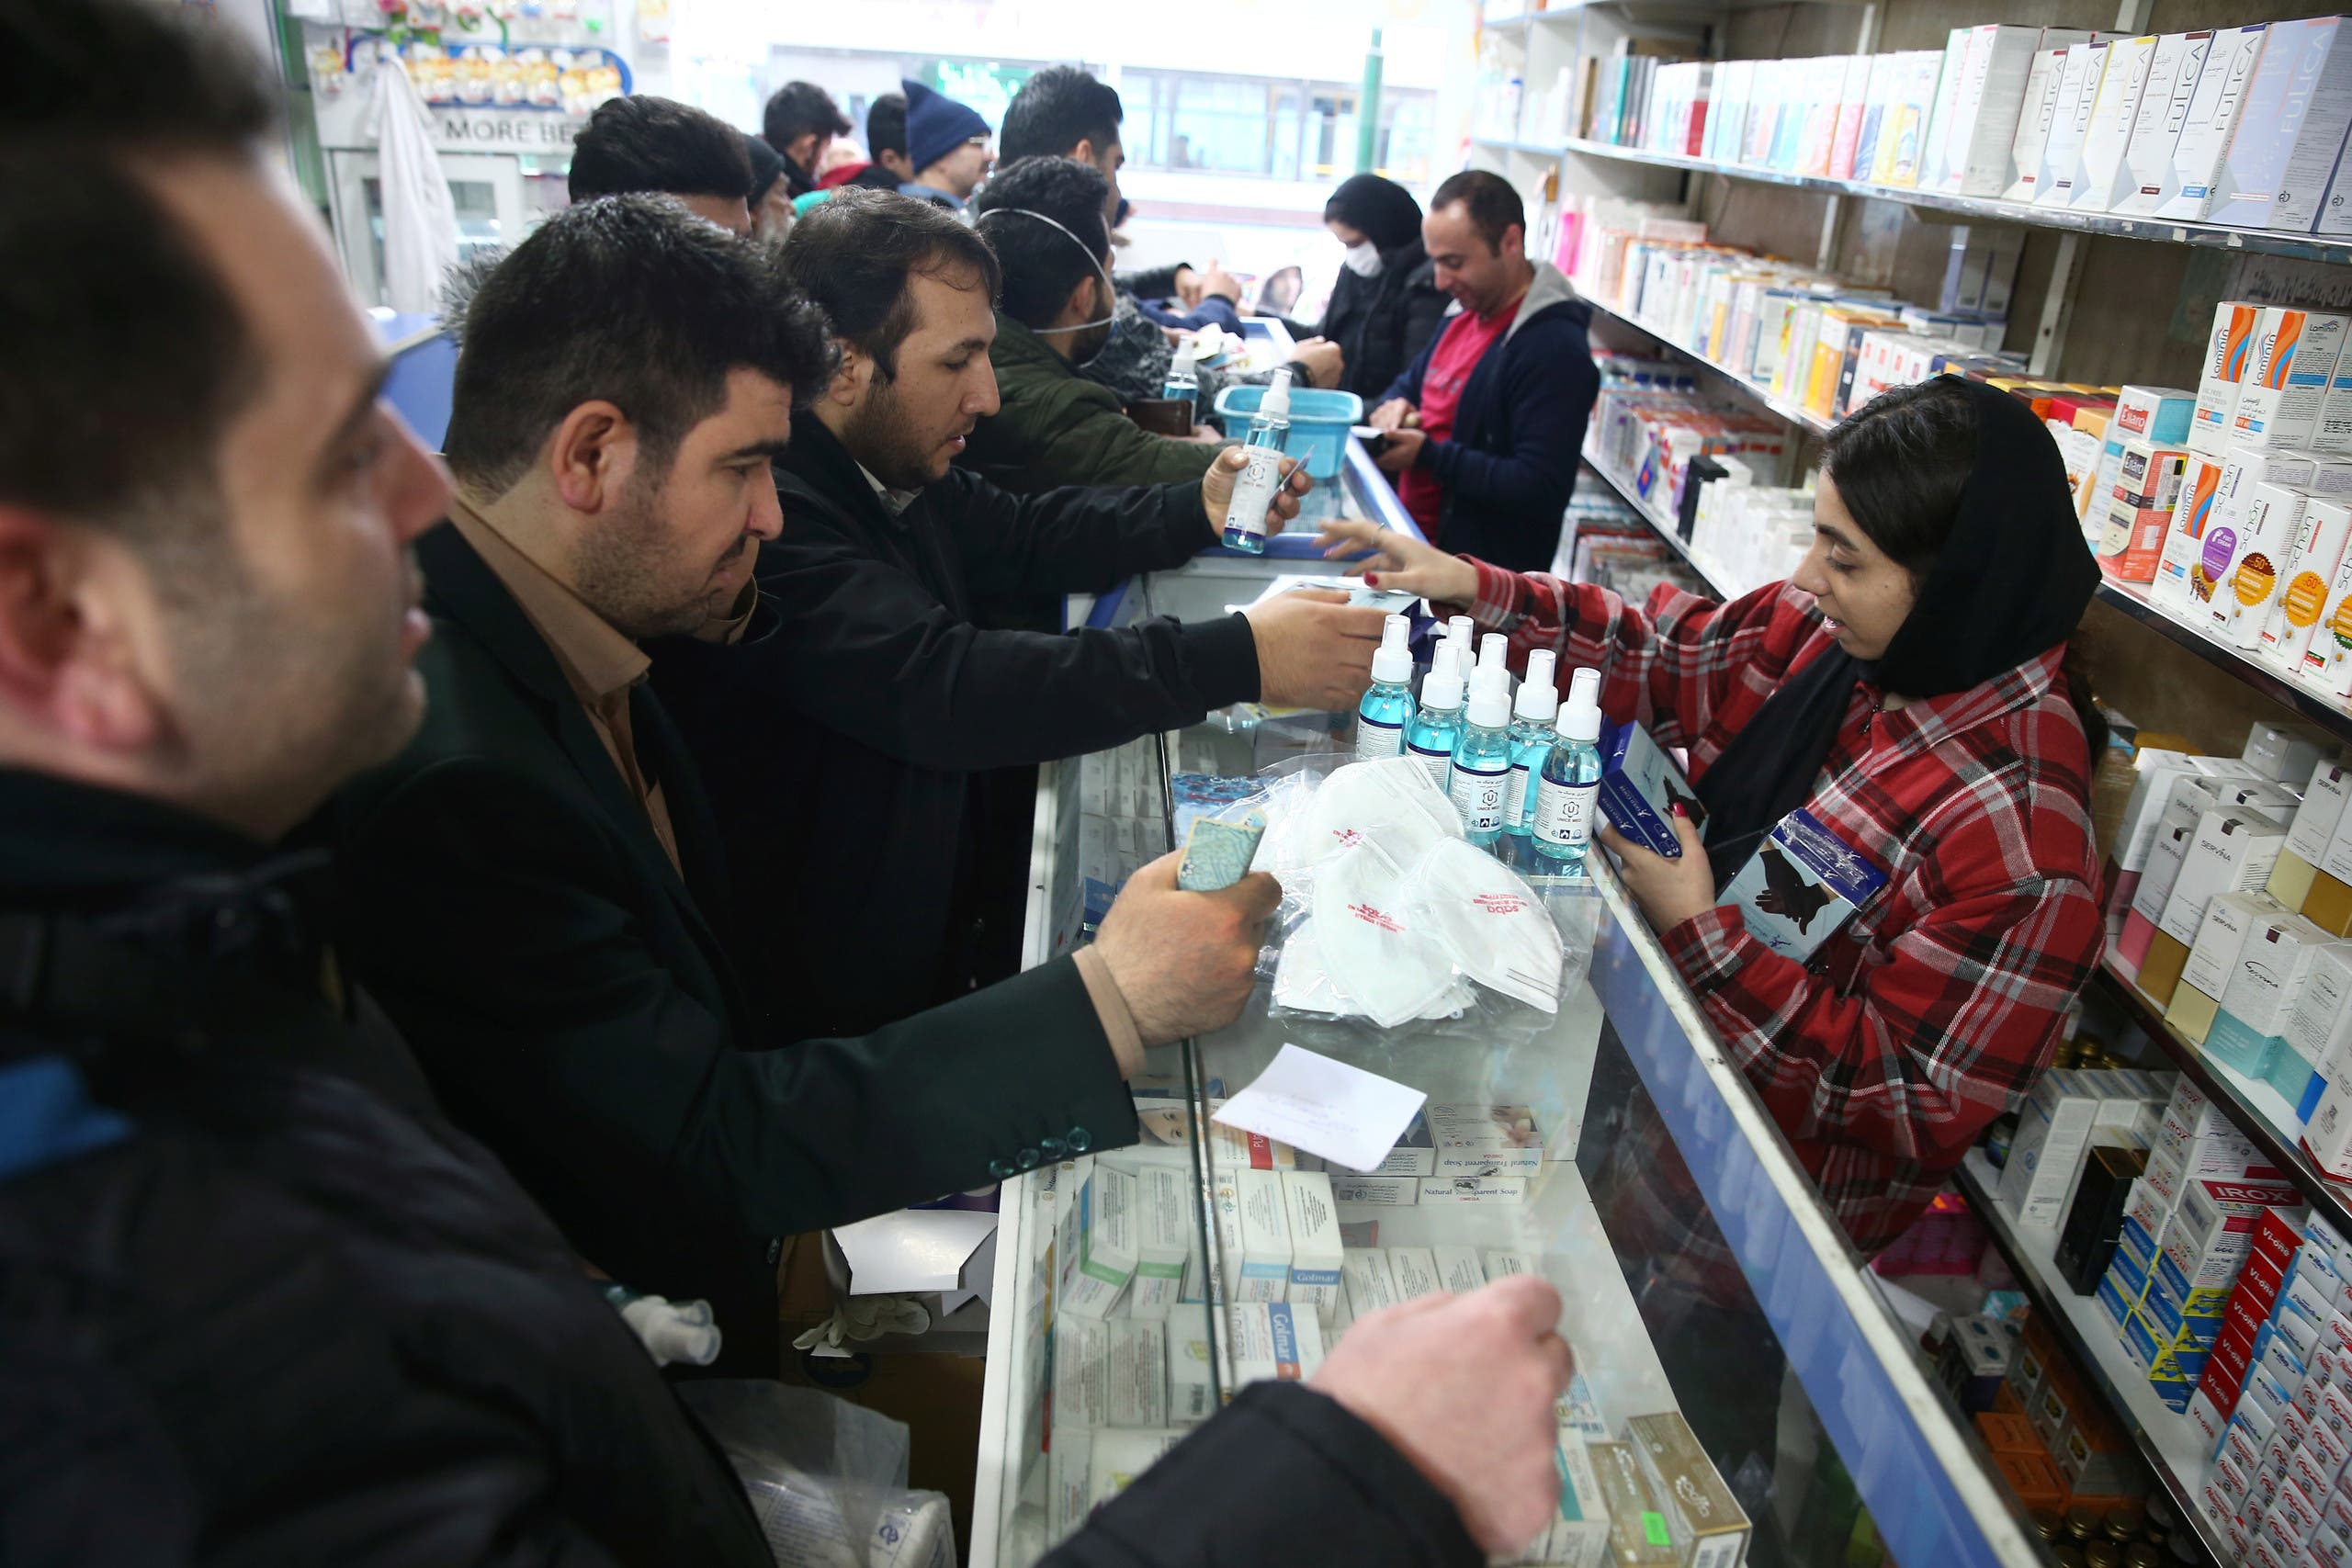 Iranians buy protective masks in a drug store to prevent contracting a coronavirus, in Tehran, Iran, February 20, 2020. (Reuters)